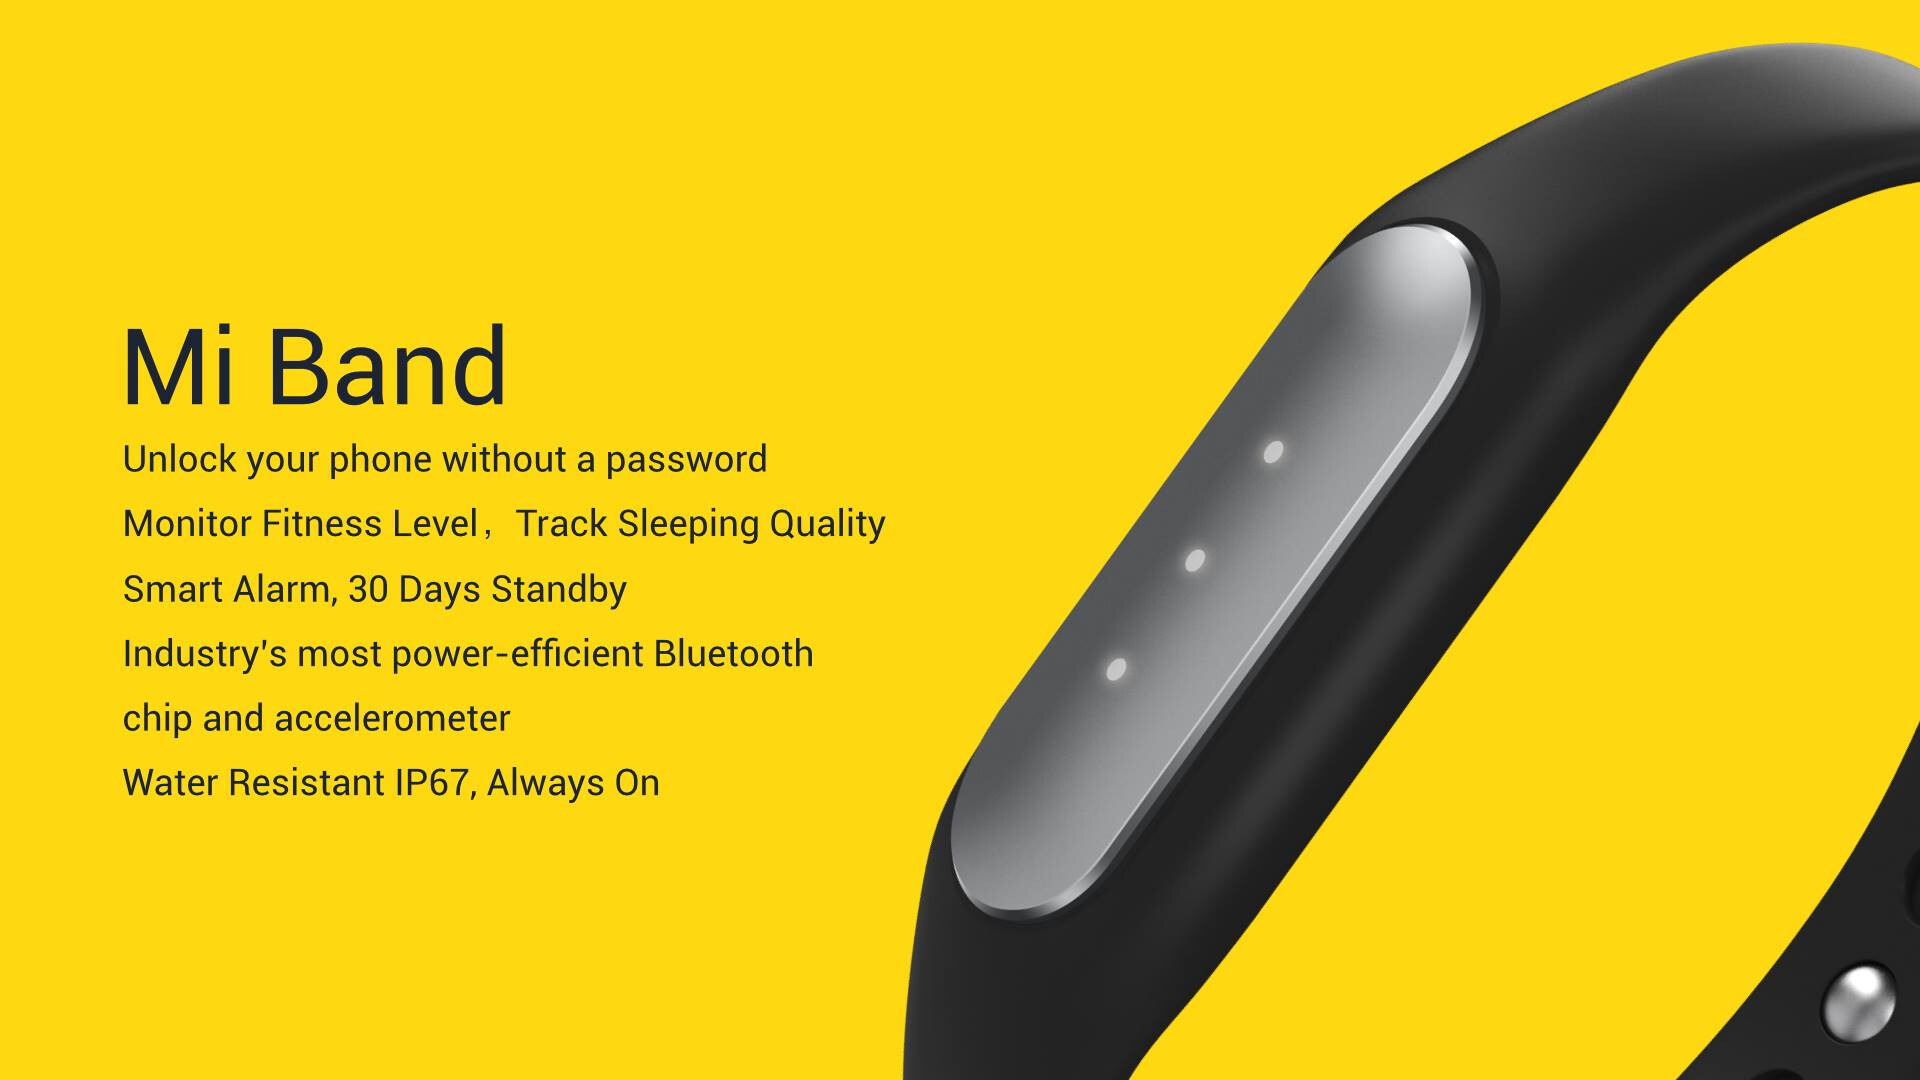 Xiaomi Outs The Mi Band An Affordable Fitness Wearable That Wakes You Up And Unlocks Your Mi Phone